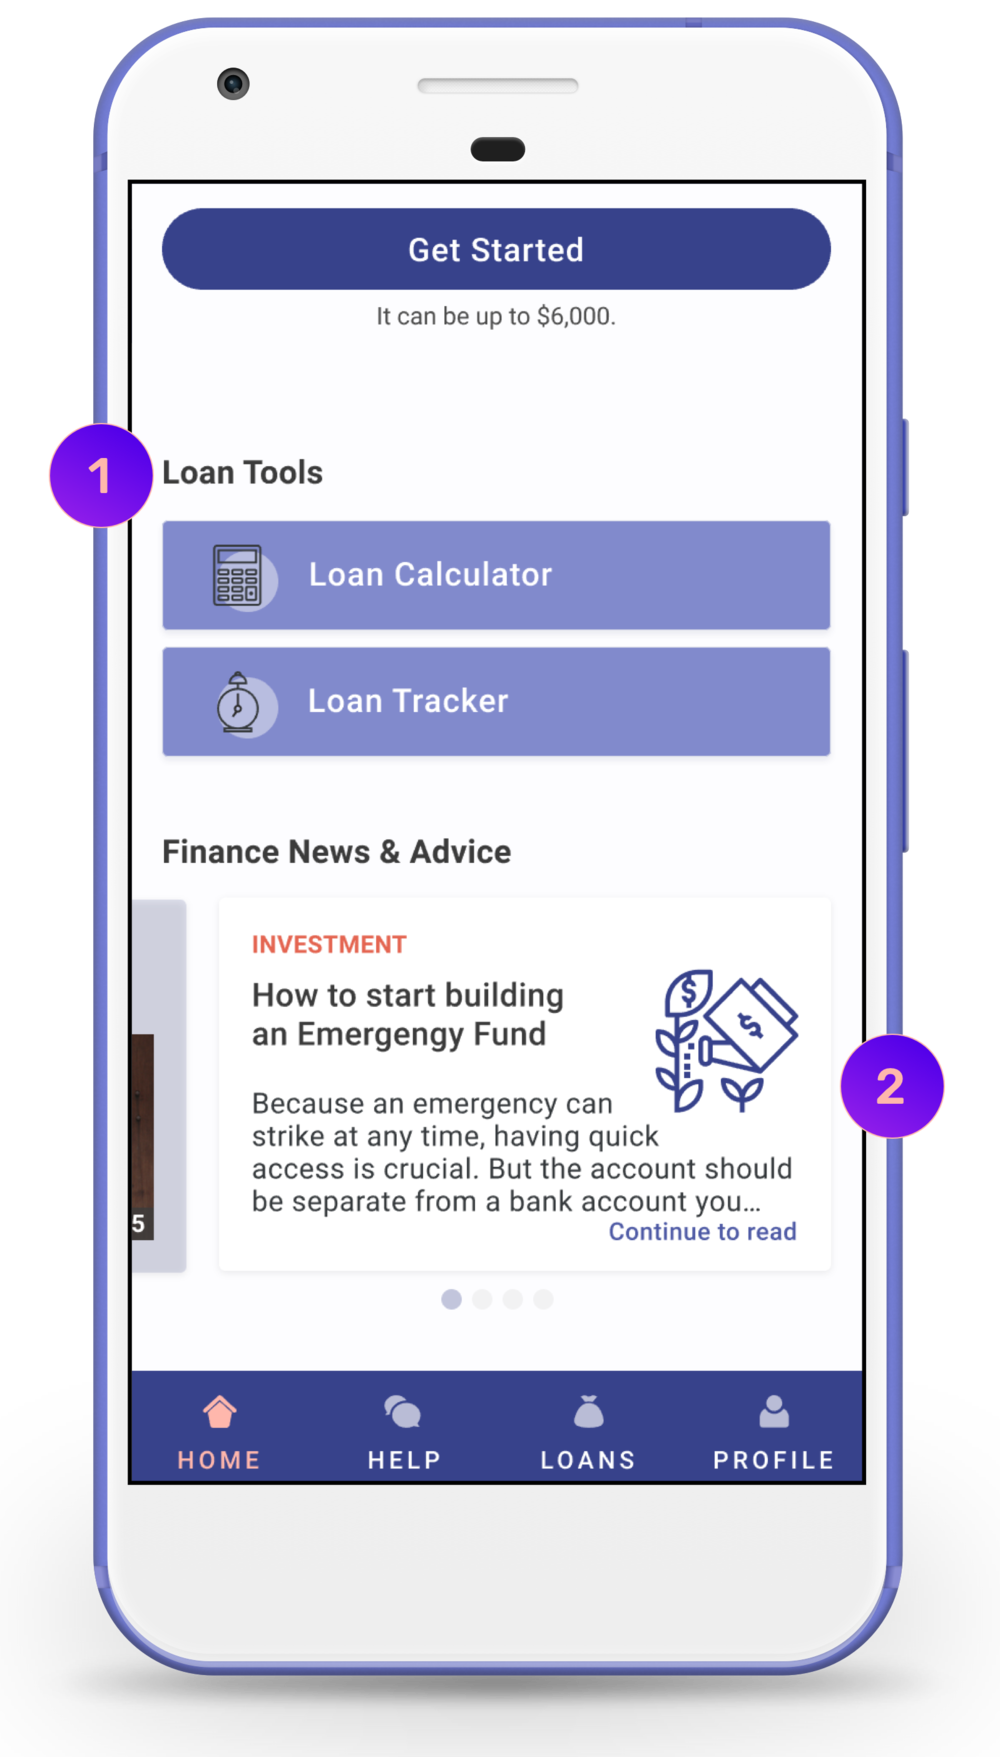 Loan-tools-financial-content-education.png